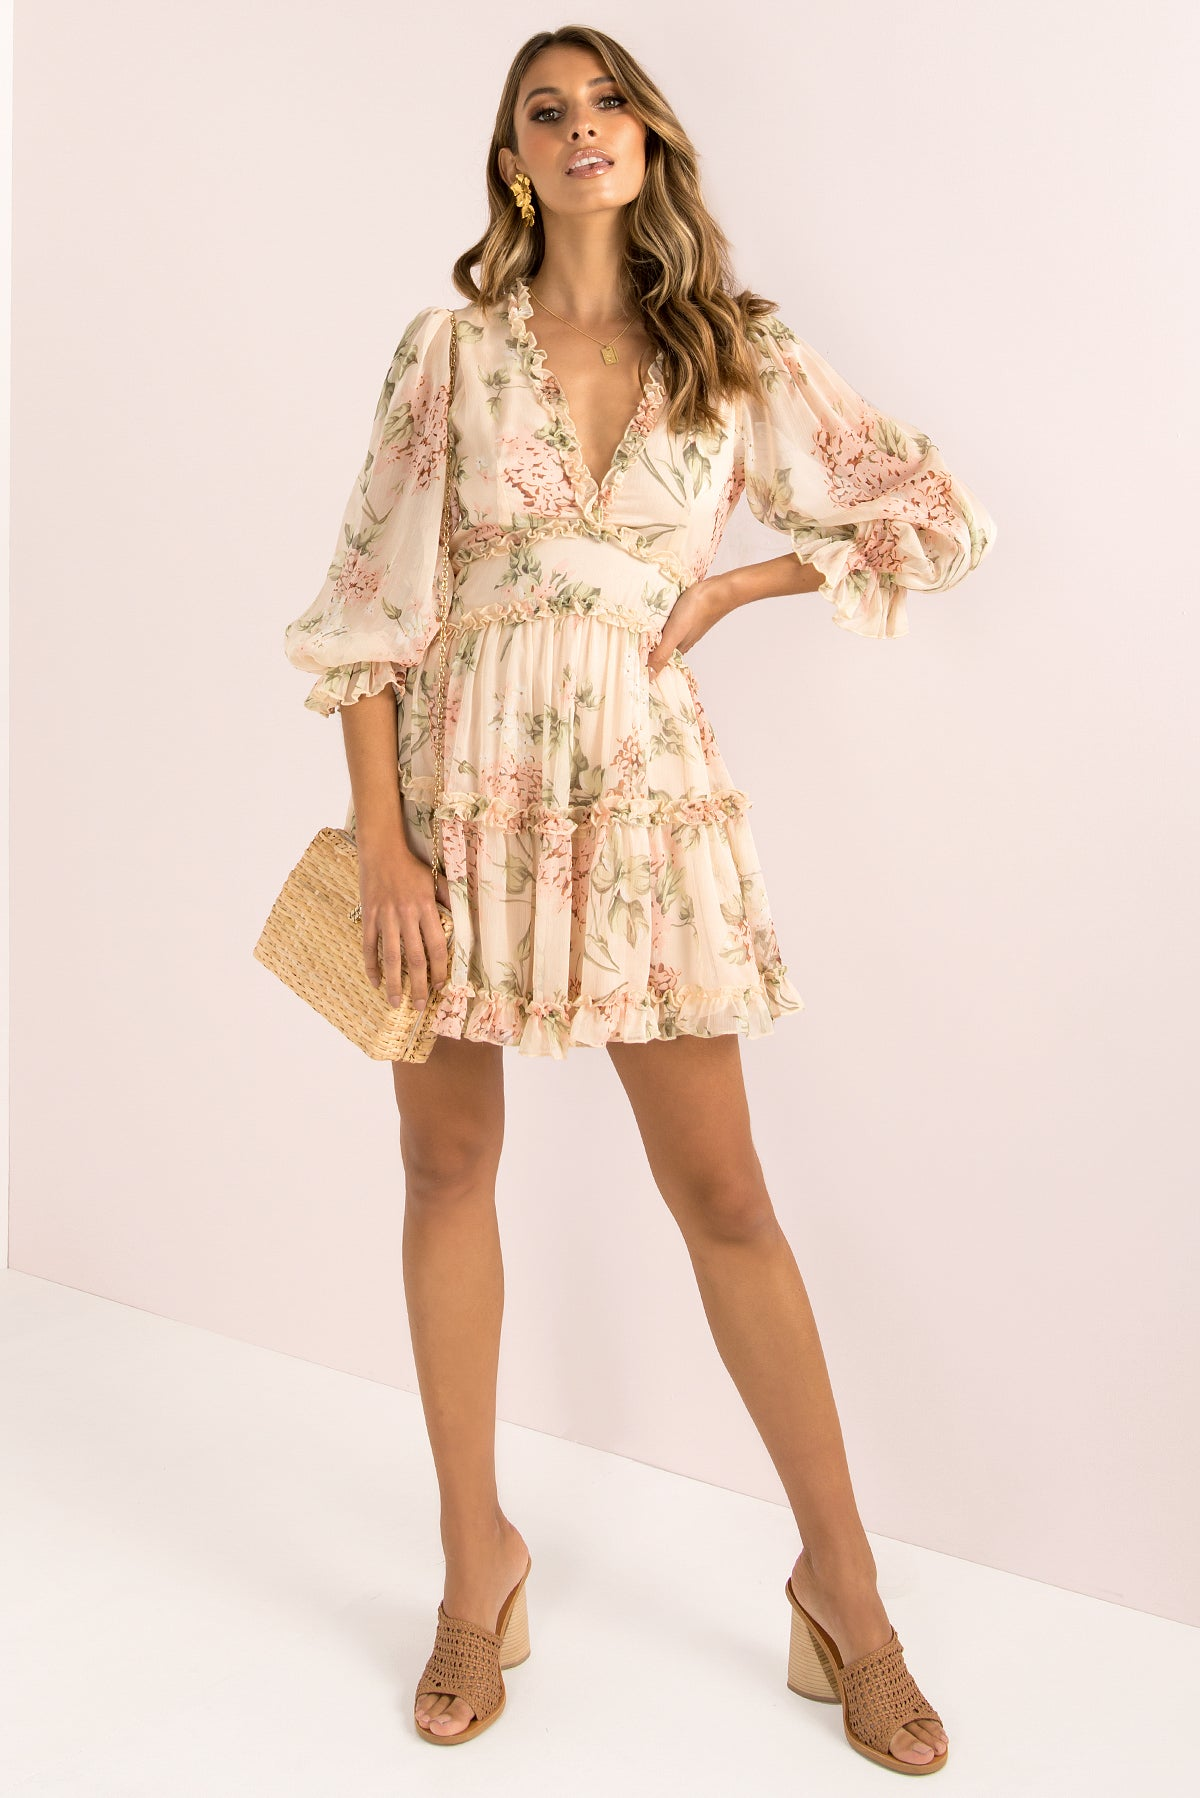 Aurora Dress / Beige Floral